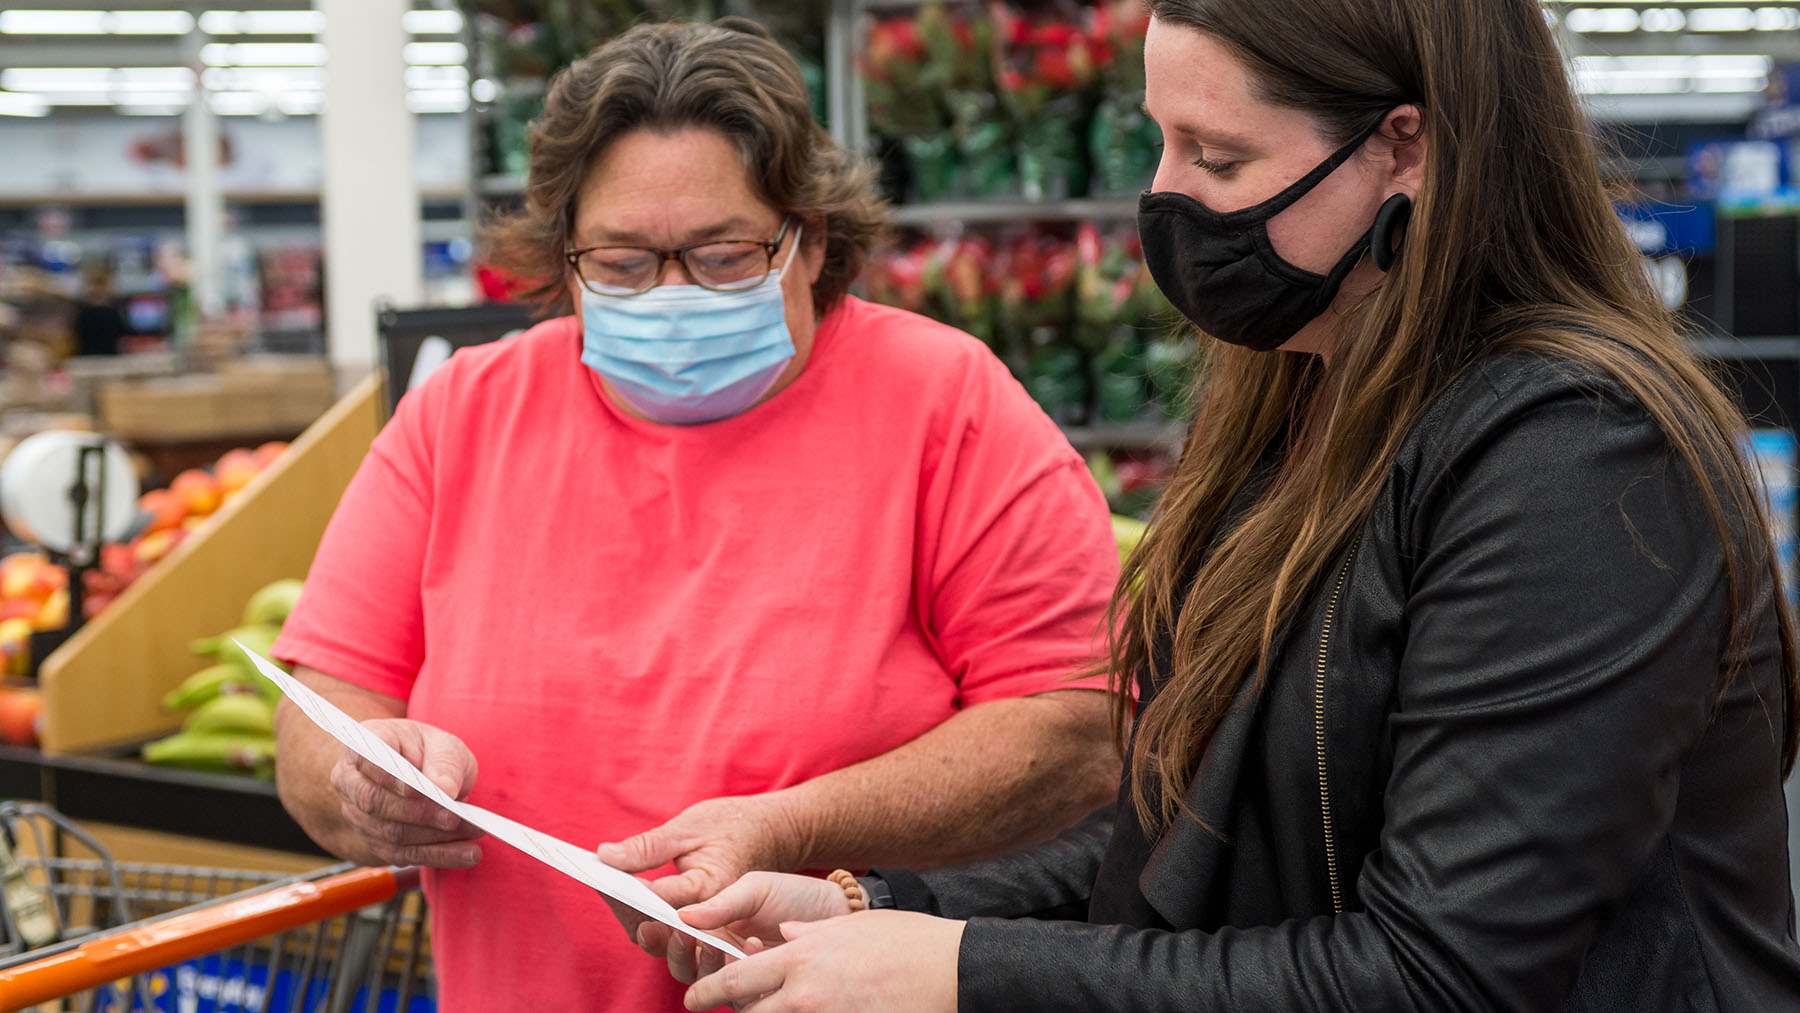 A Healthier You Meridian Program Coordinator, Barbara Zeller, assists a program participant at the monthly healthy shopping trip. Meridian, Mississippi. (Photo By Revere Photography for Direct Relief)